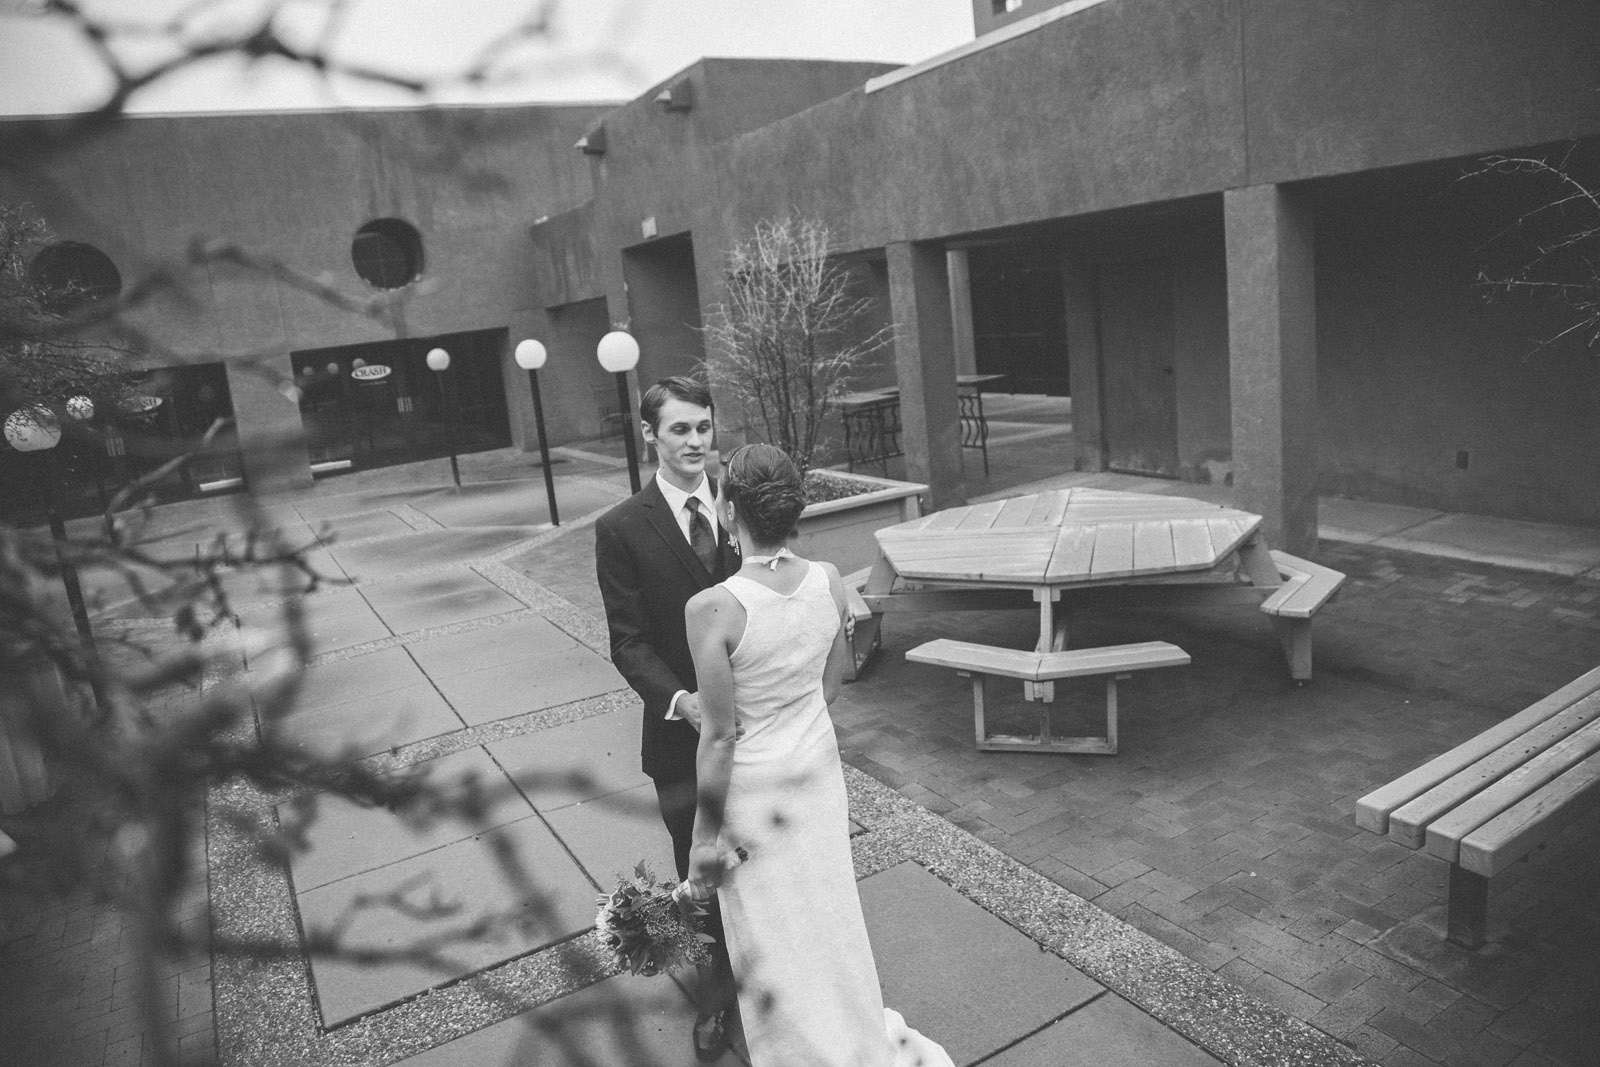 059-bride-and-groom-see-eachother-in-first-look-in-courtyard-before-the-ceremony-in-albuquerque-nm